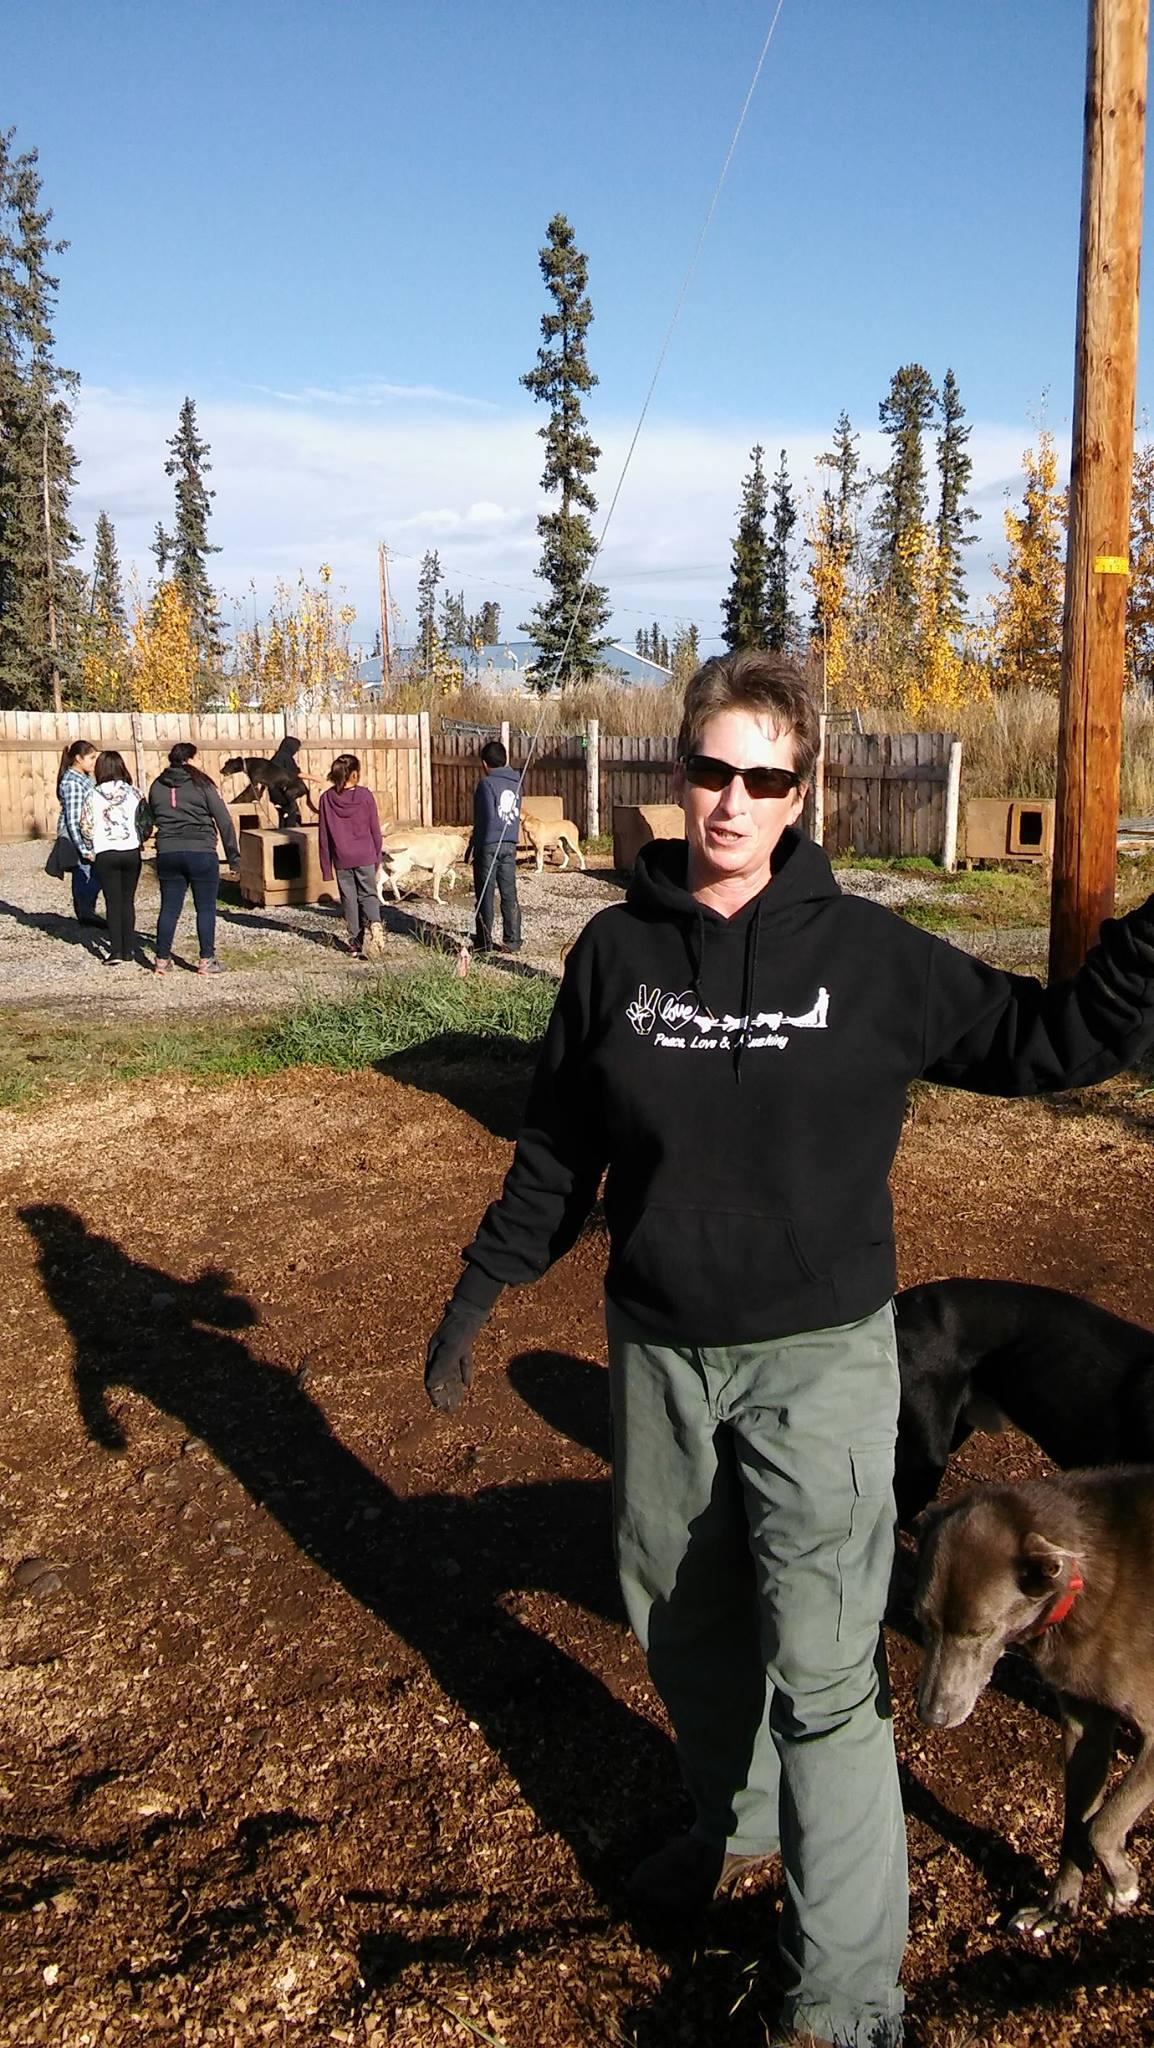 Roni Noonan-Agre and students in dog yard.